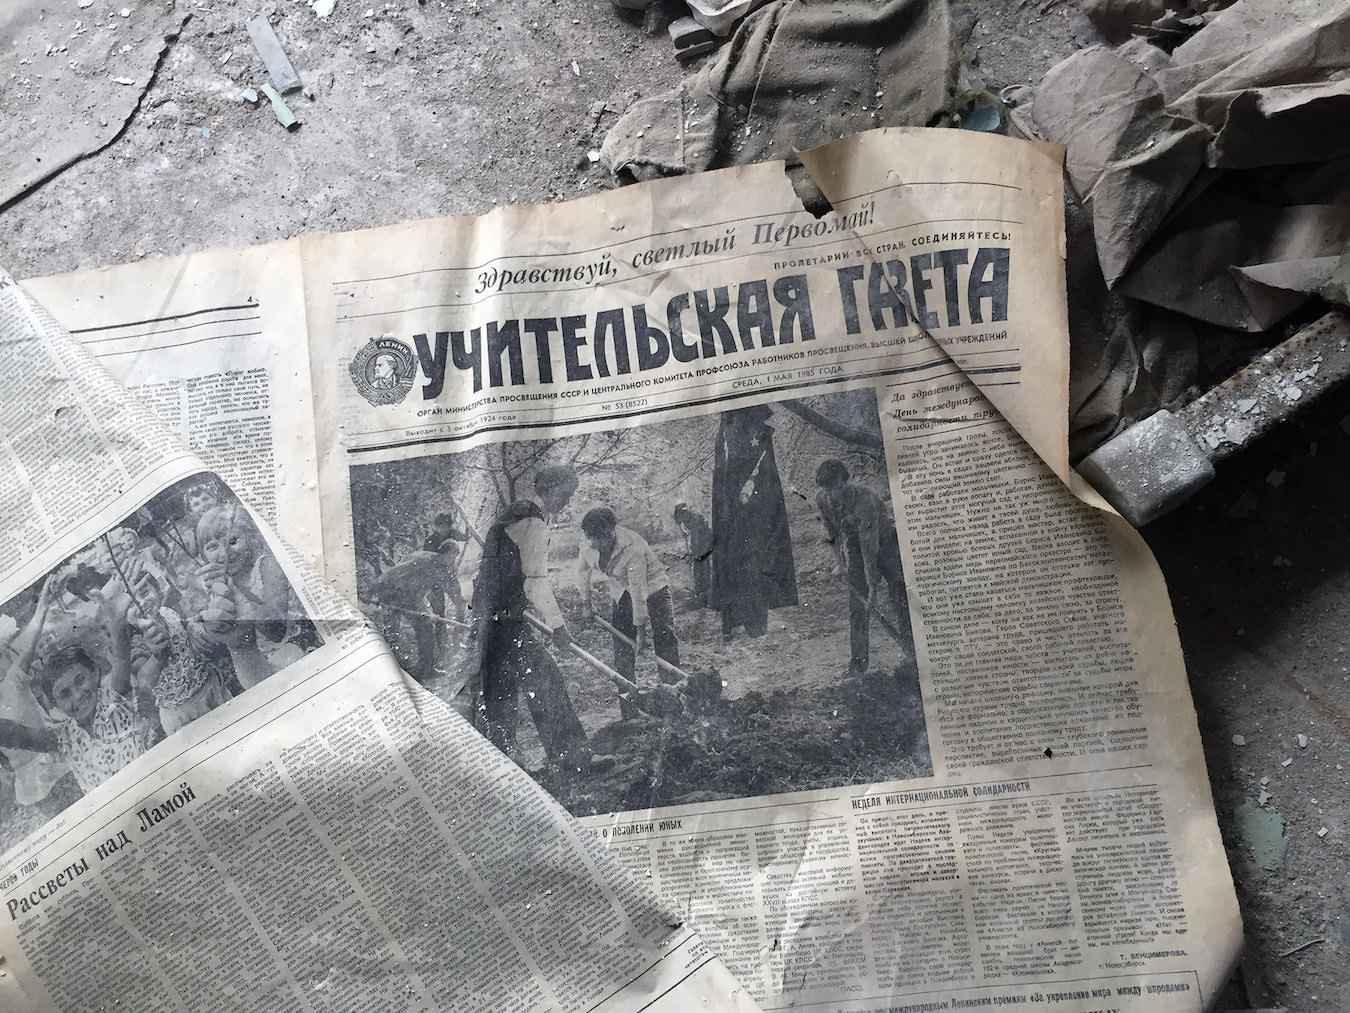 An old newspaper on the floor.